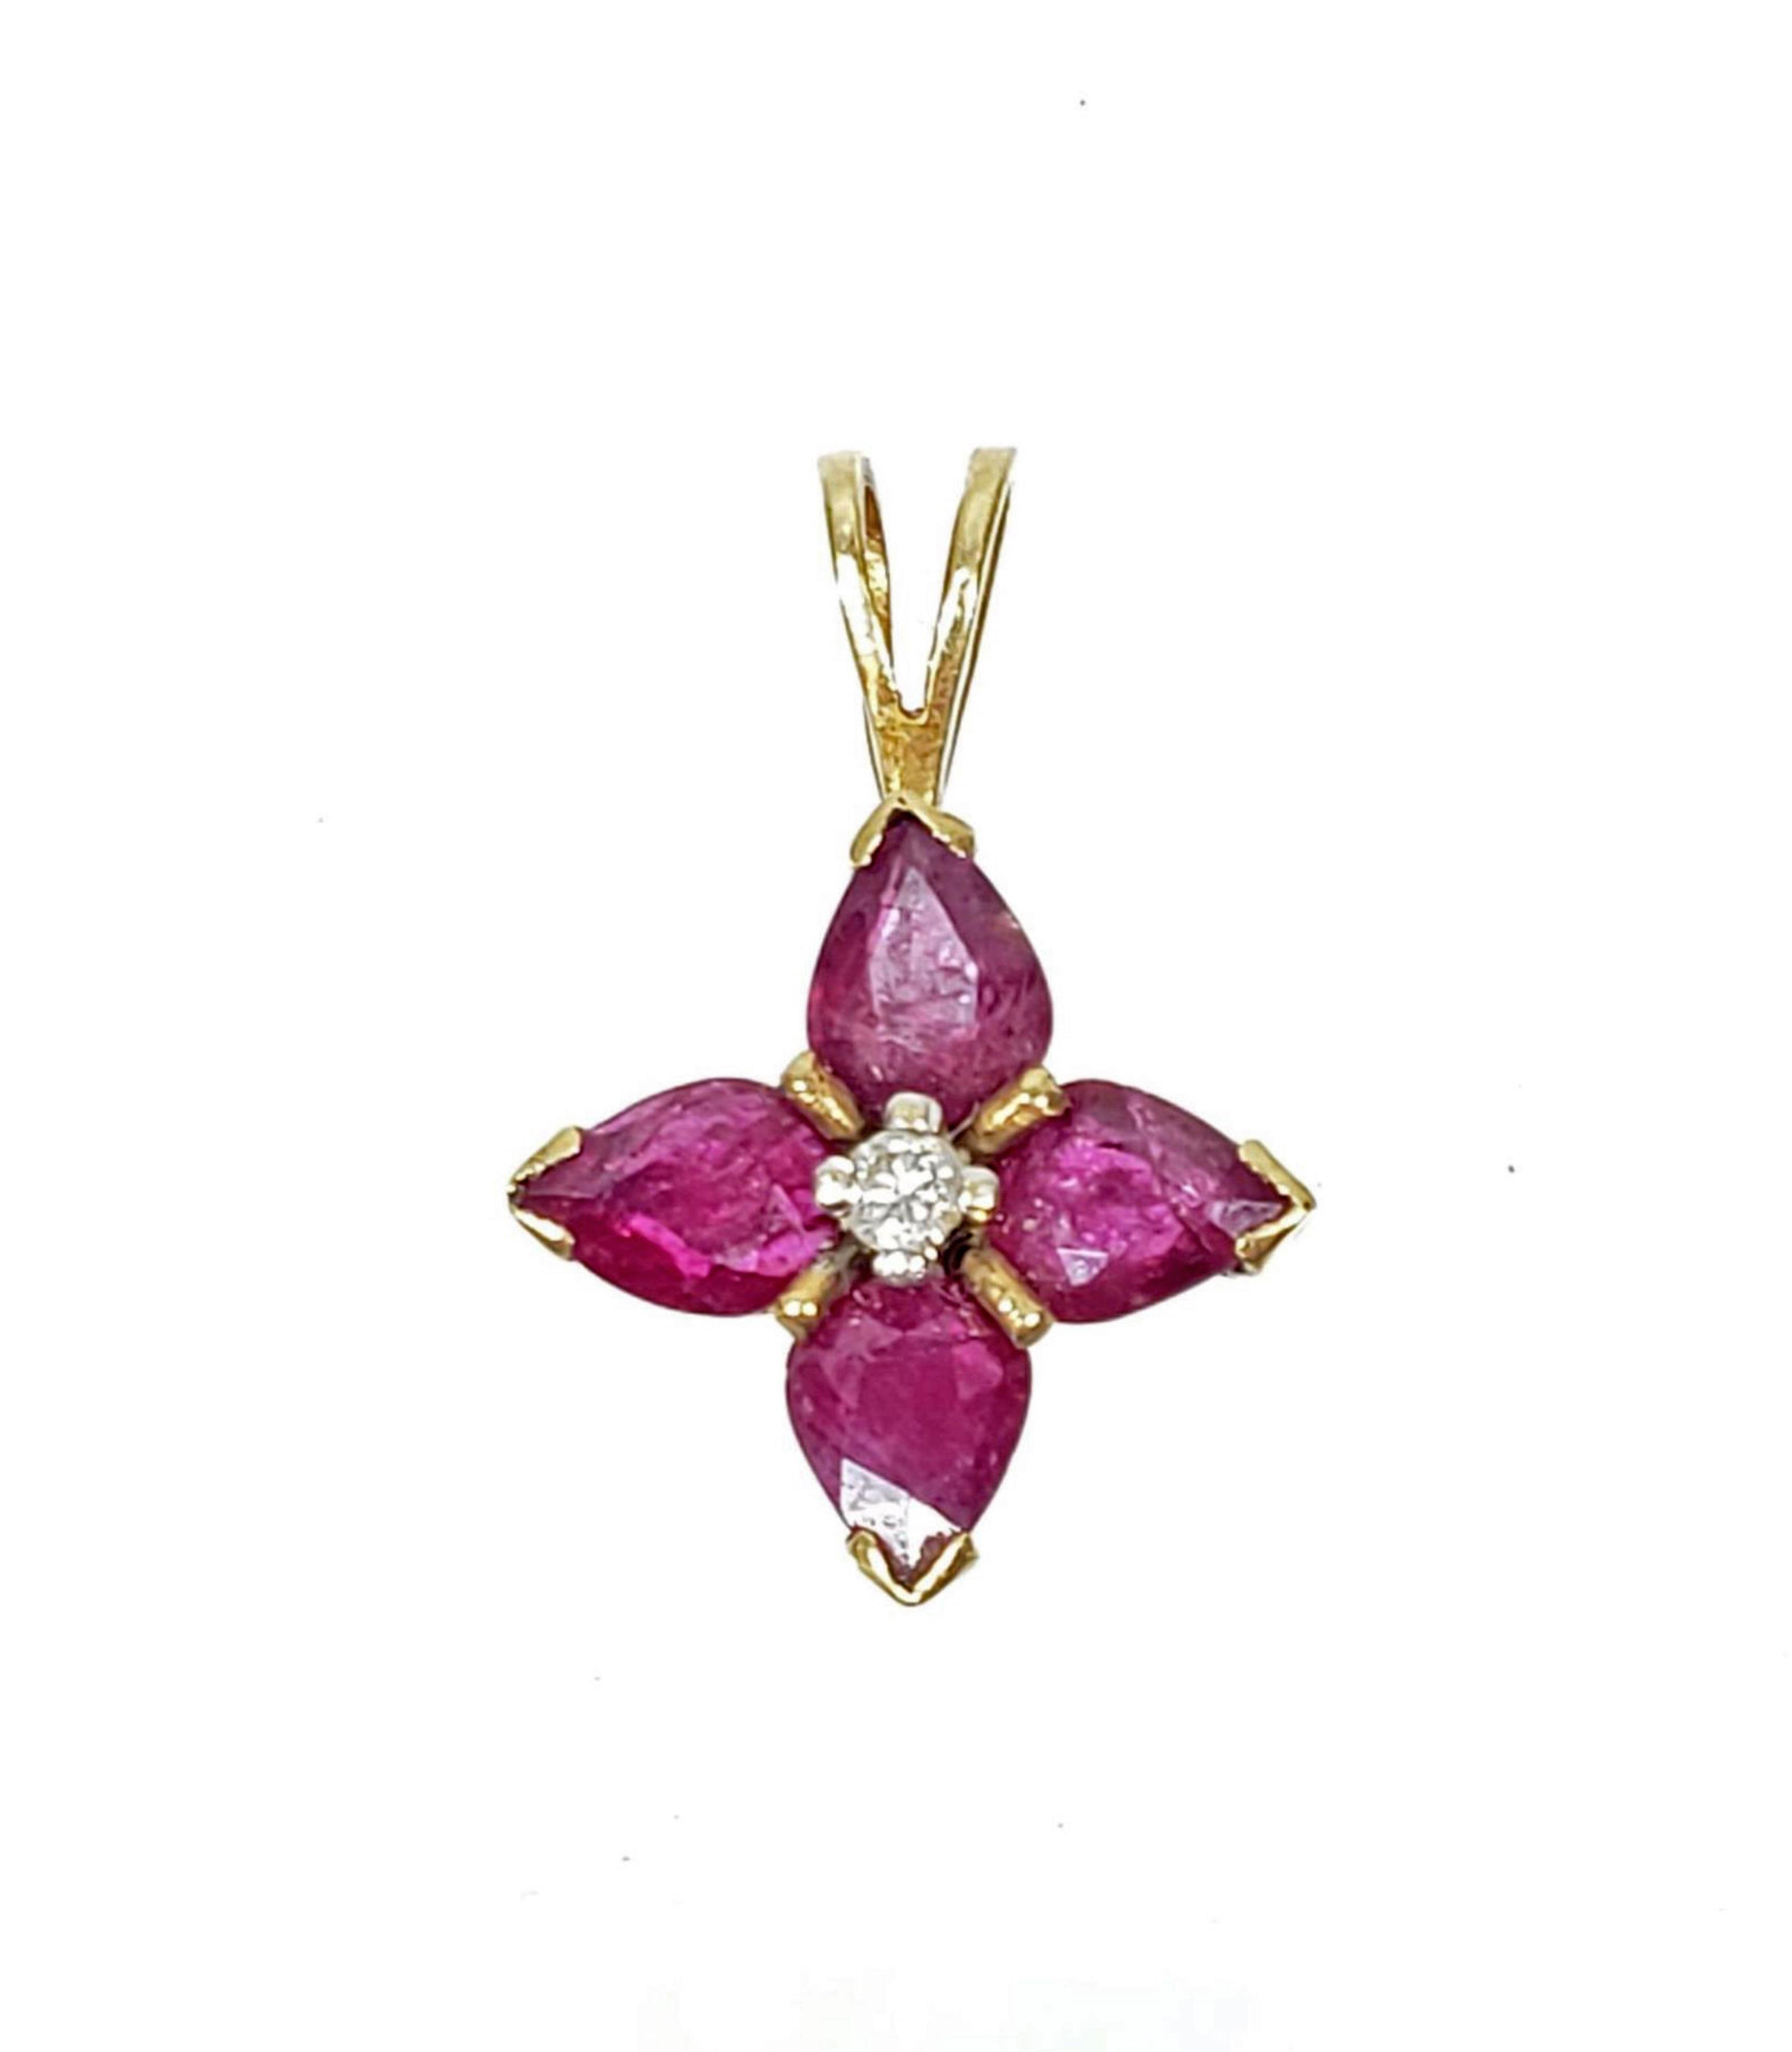 14K Gold, Ruby & Diamond Pendant